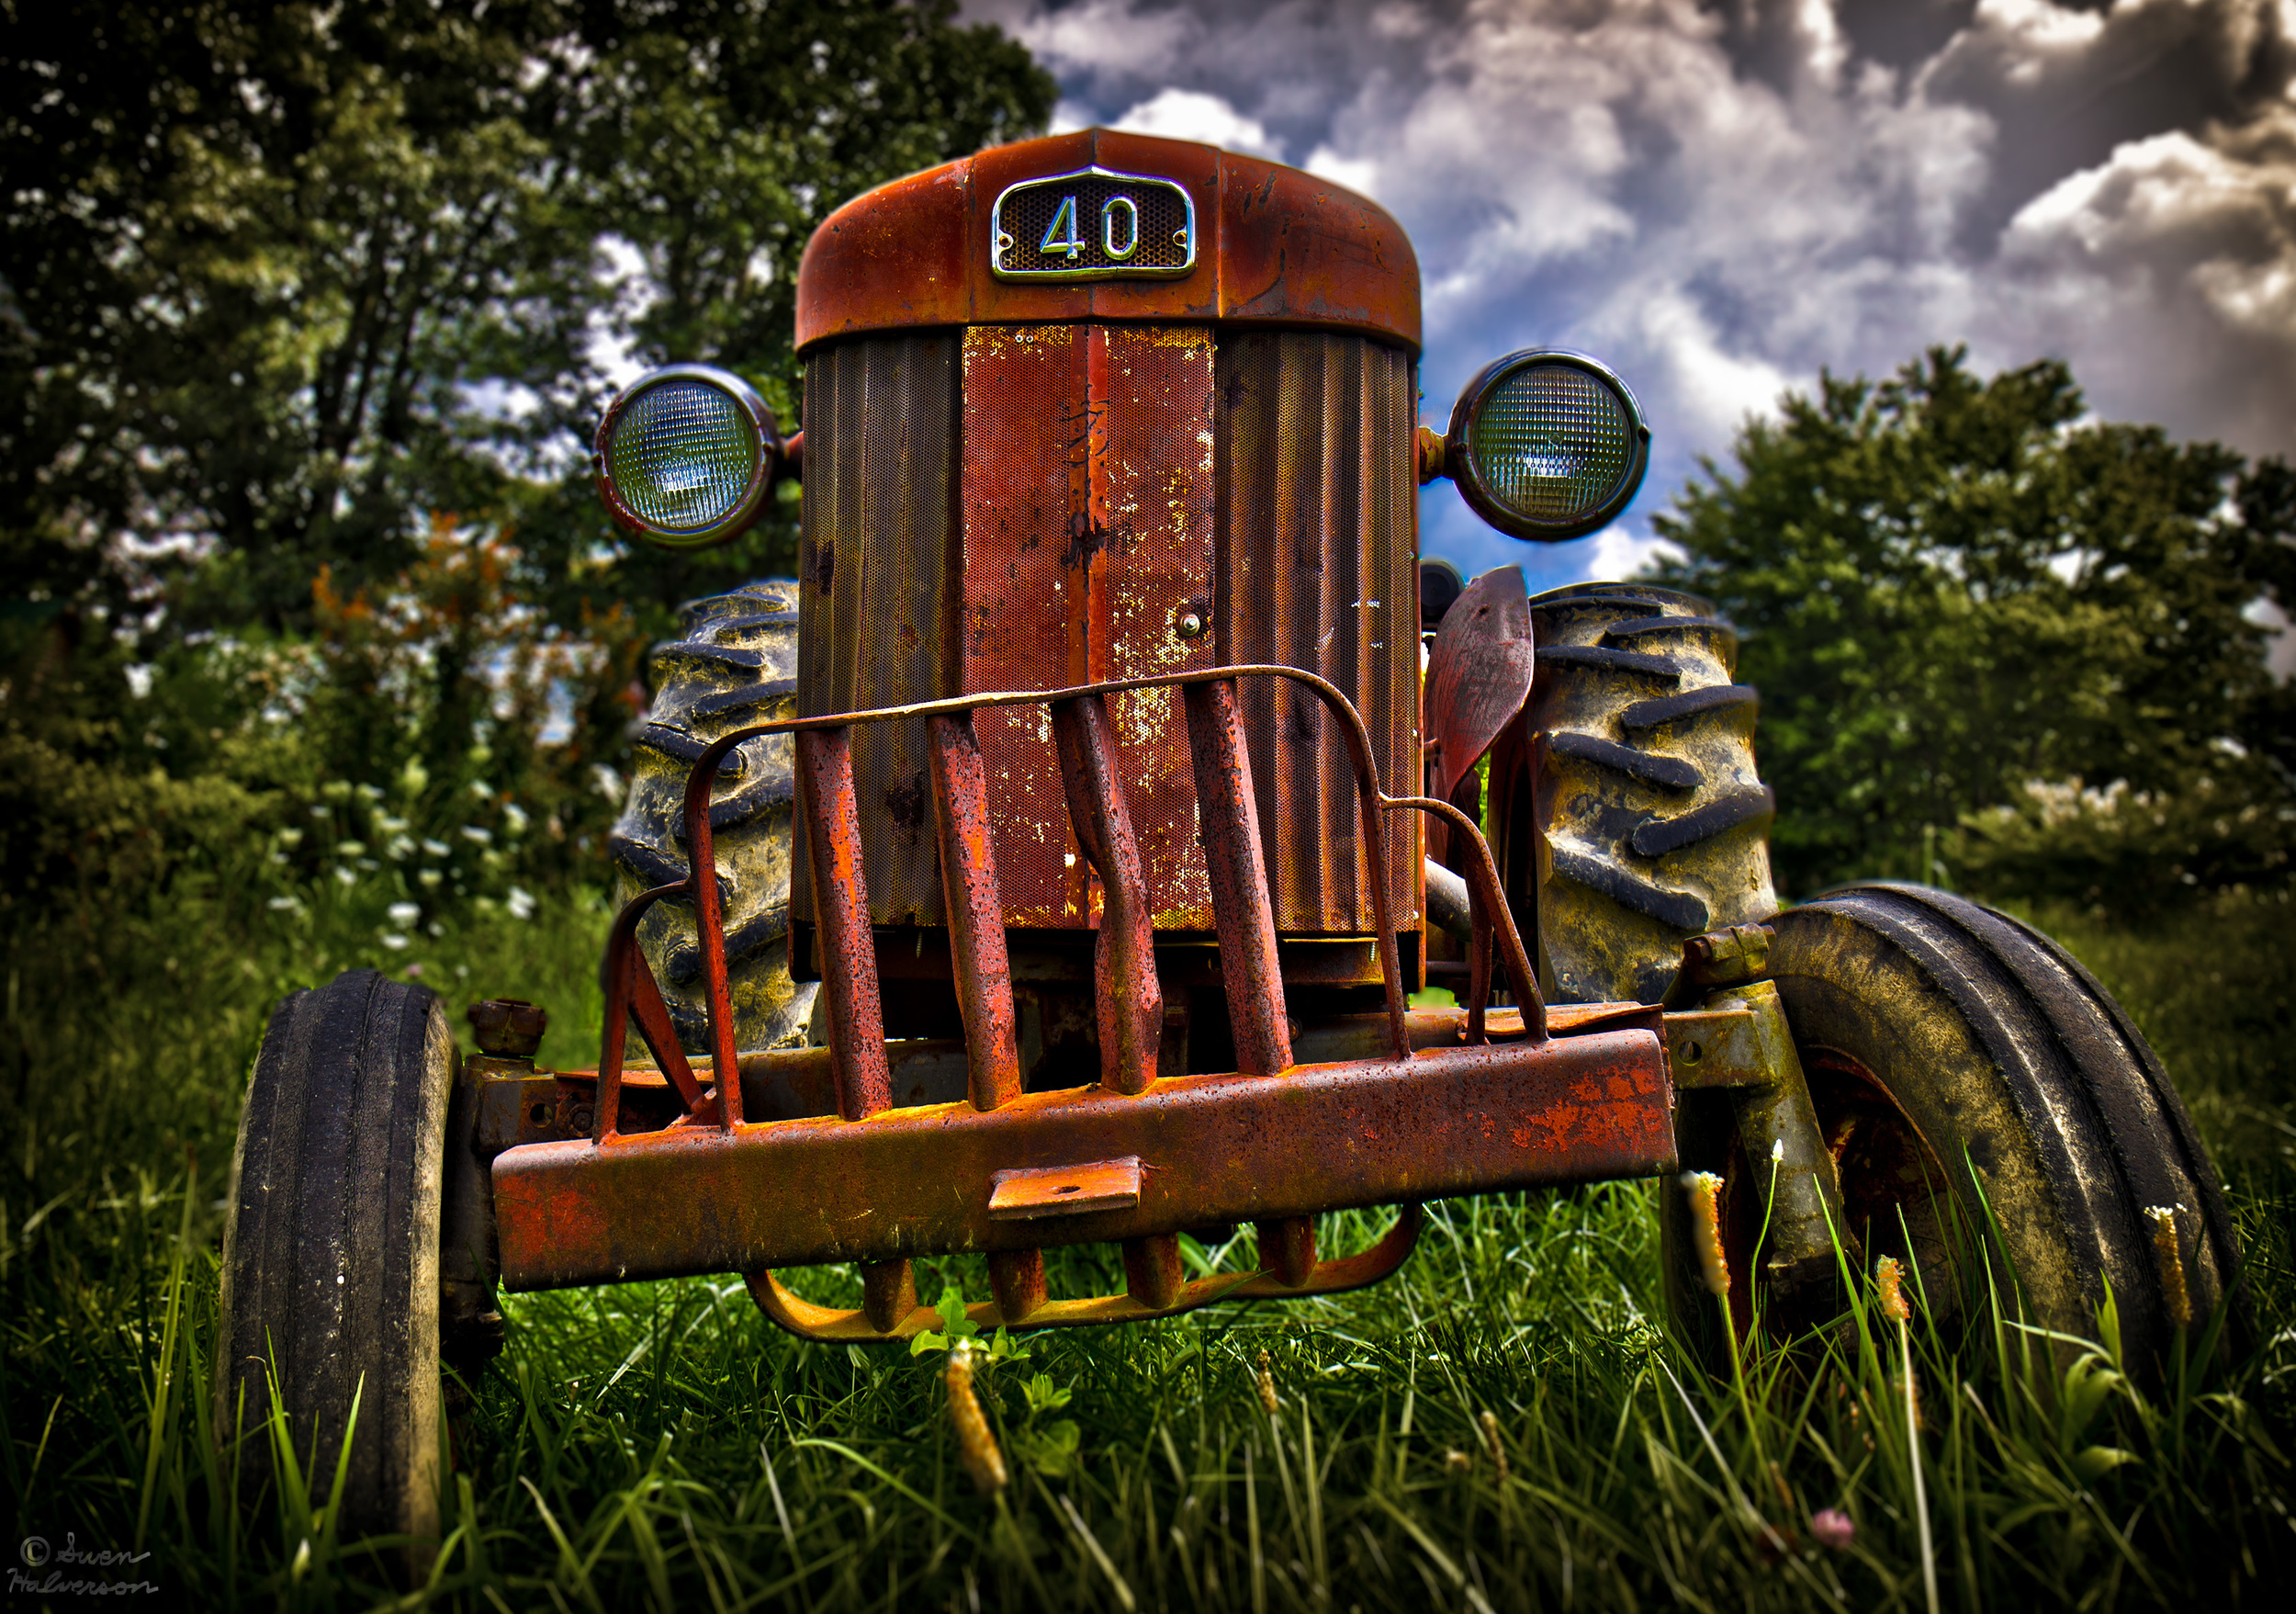 Theme: Damaged <br>Title: That Ol' Tractor